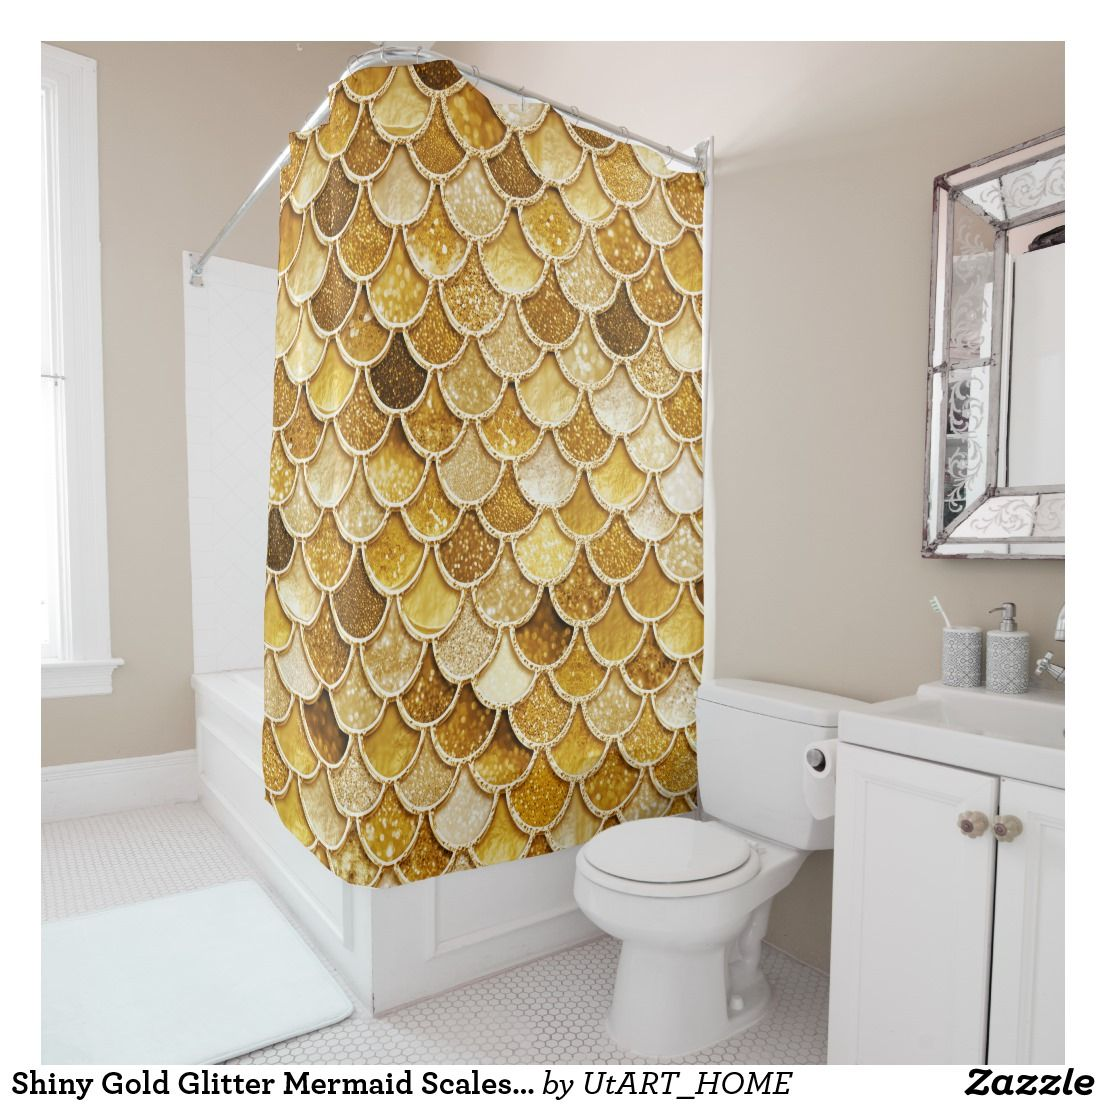 Shiny Gold Glitter Mermaid Scales Shower Curtain